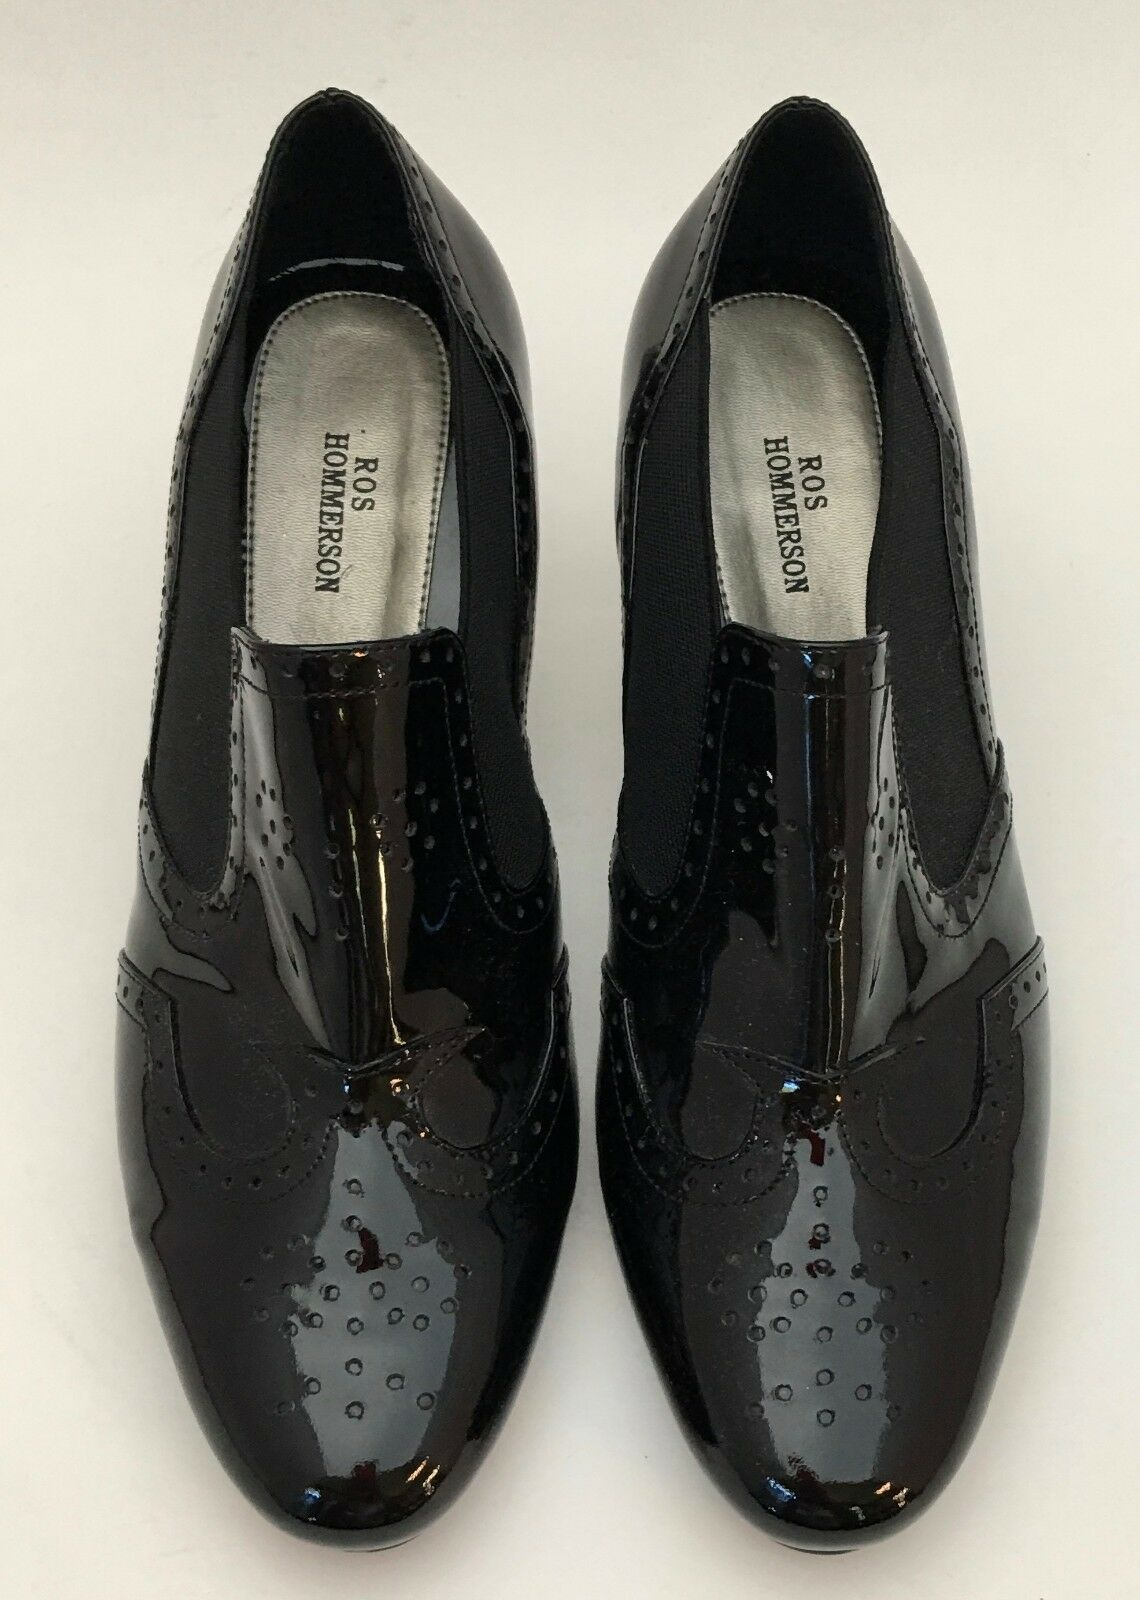 Ros Hommerson Black Patent Leather Brogue Wingtip Heels shoes Size 8 WW